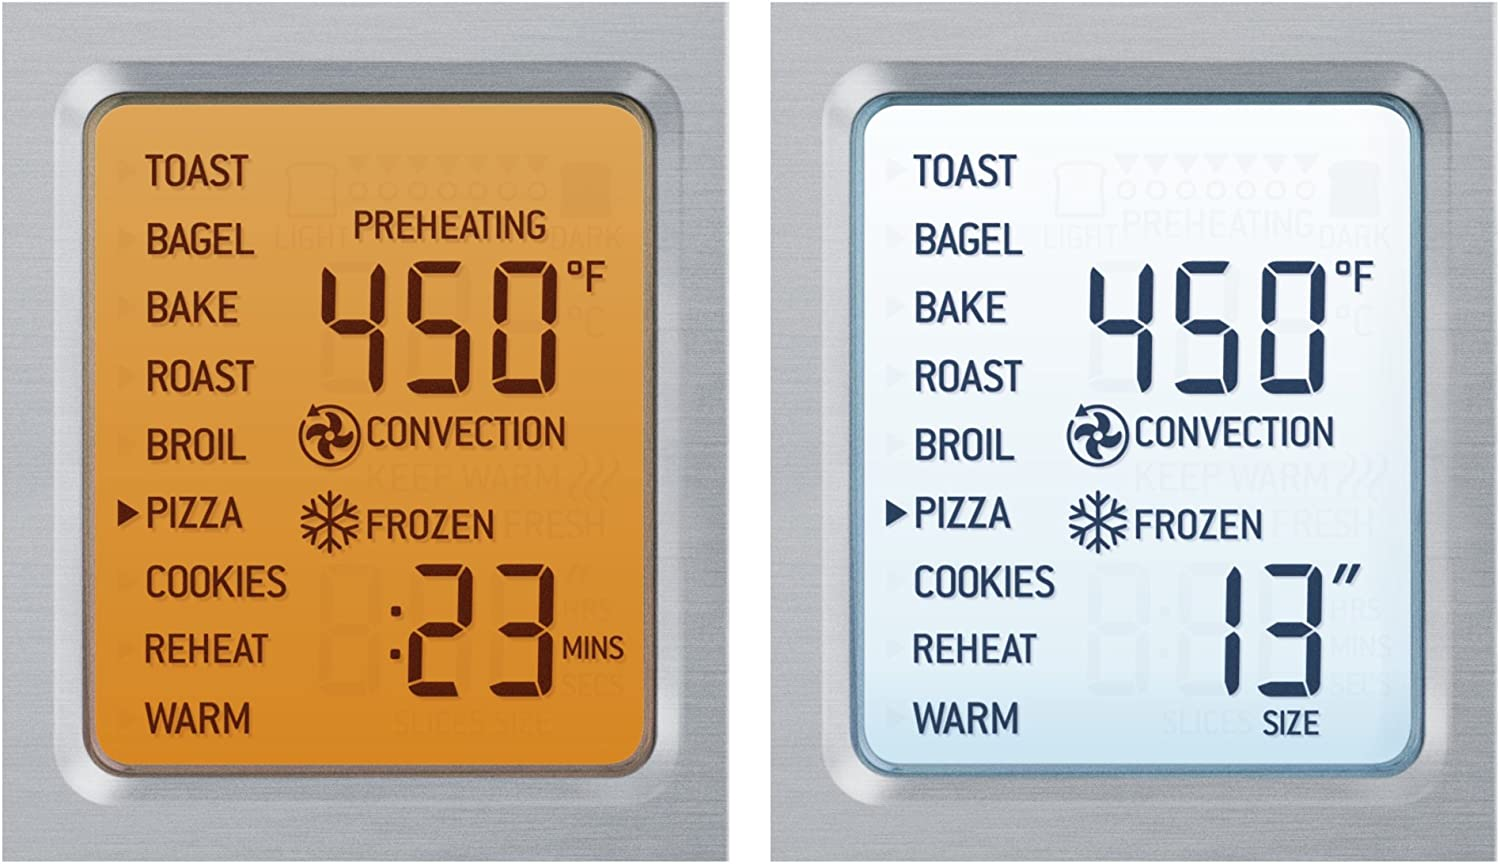 breville smart oven pro LCD display